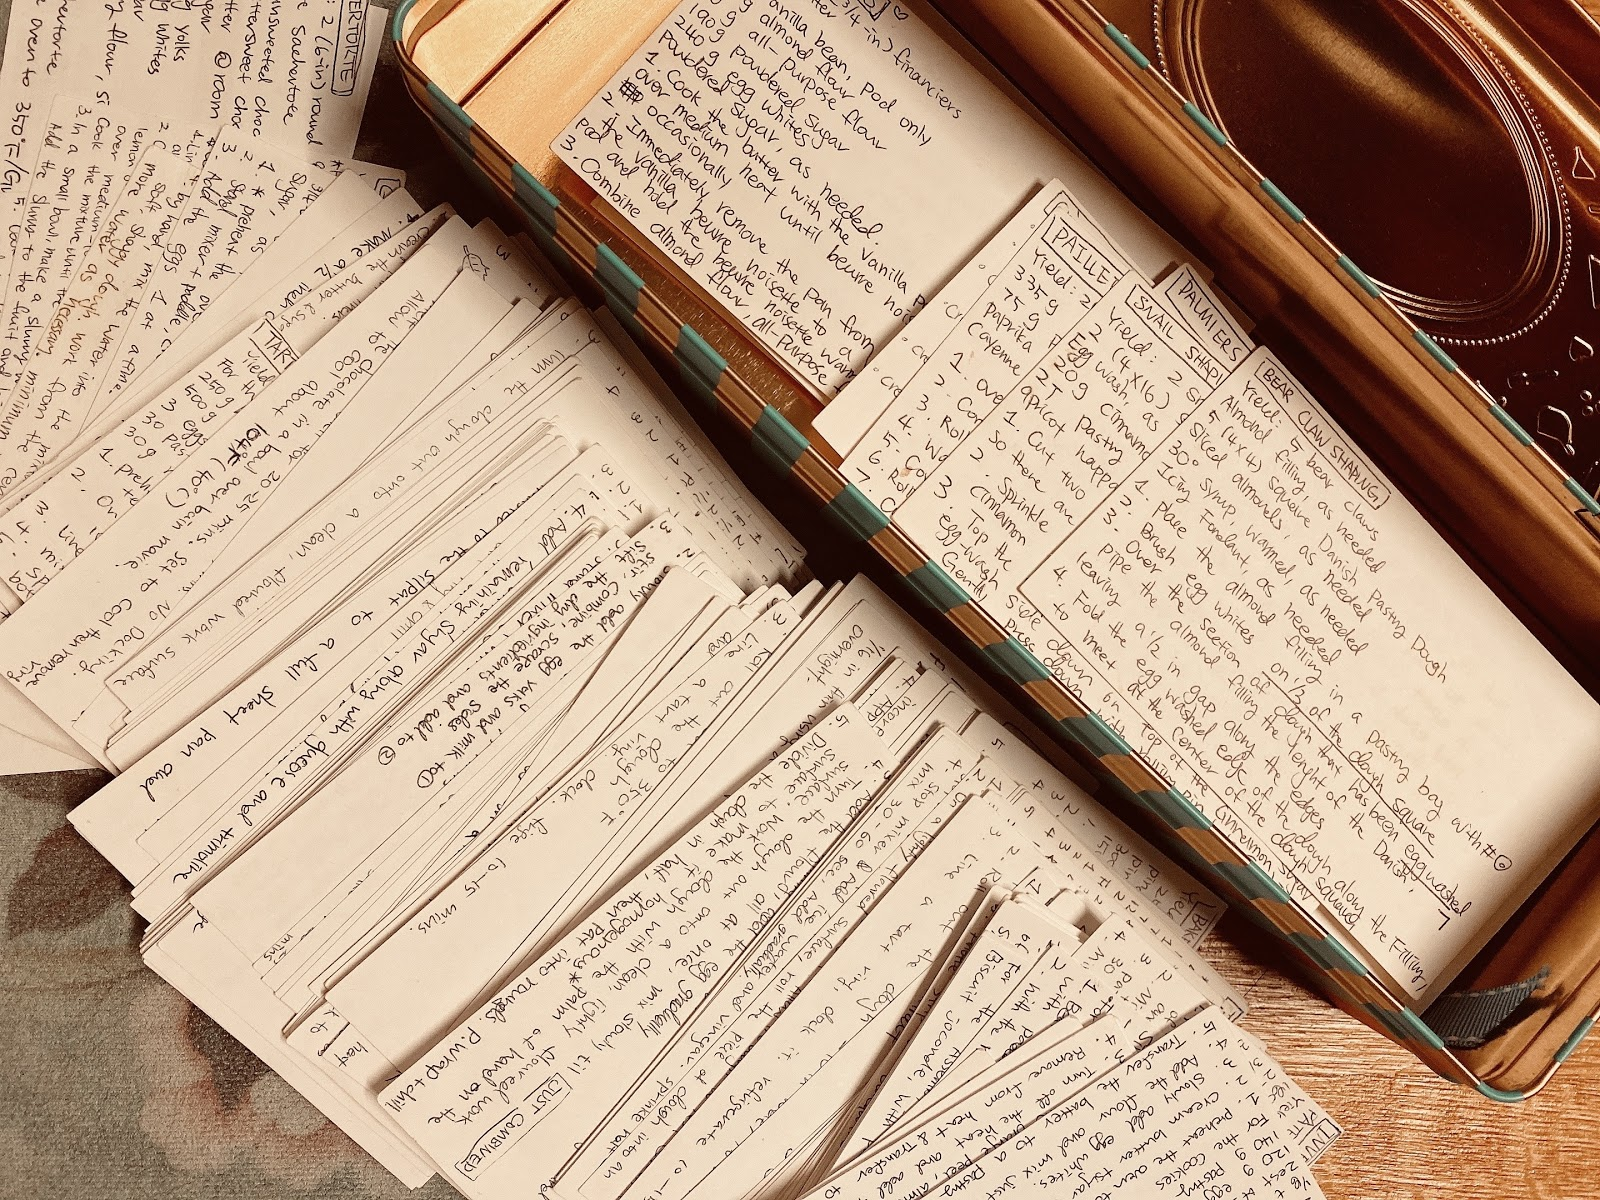 photo of a hand-written recipe pile